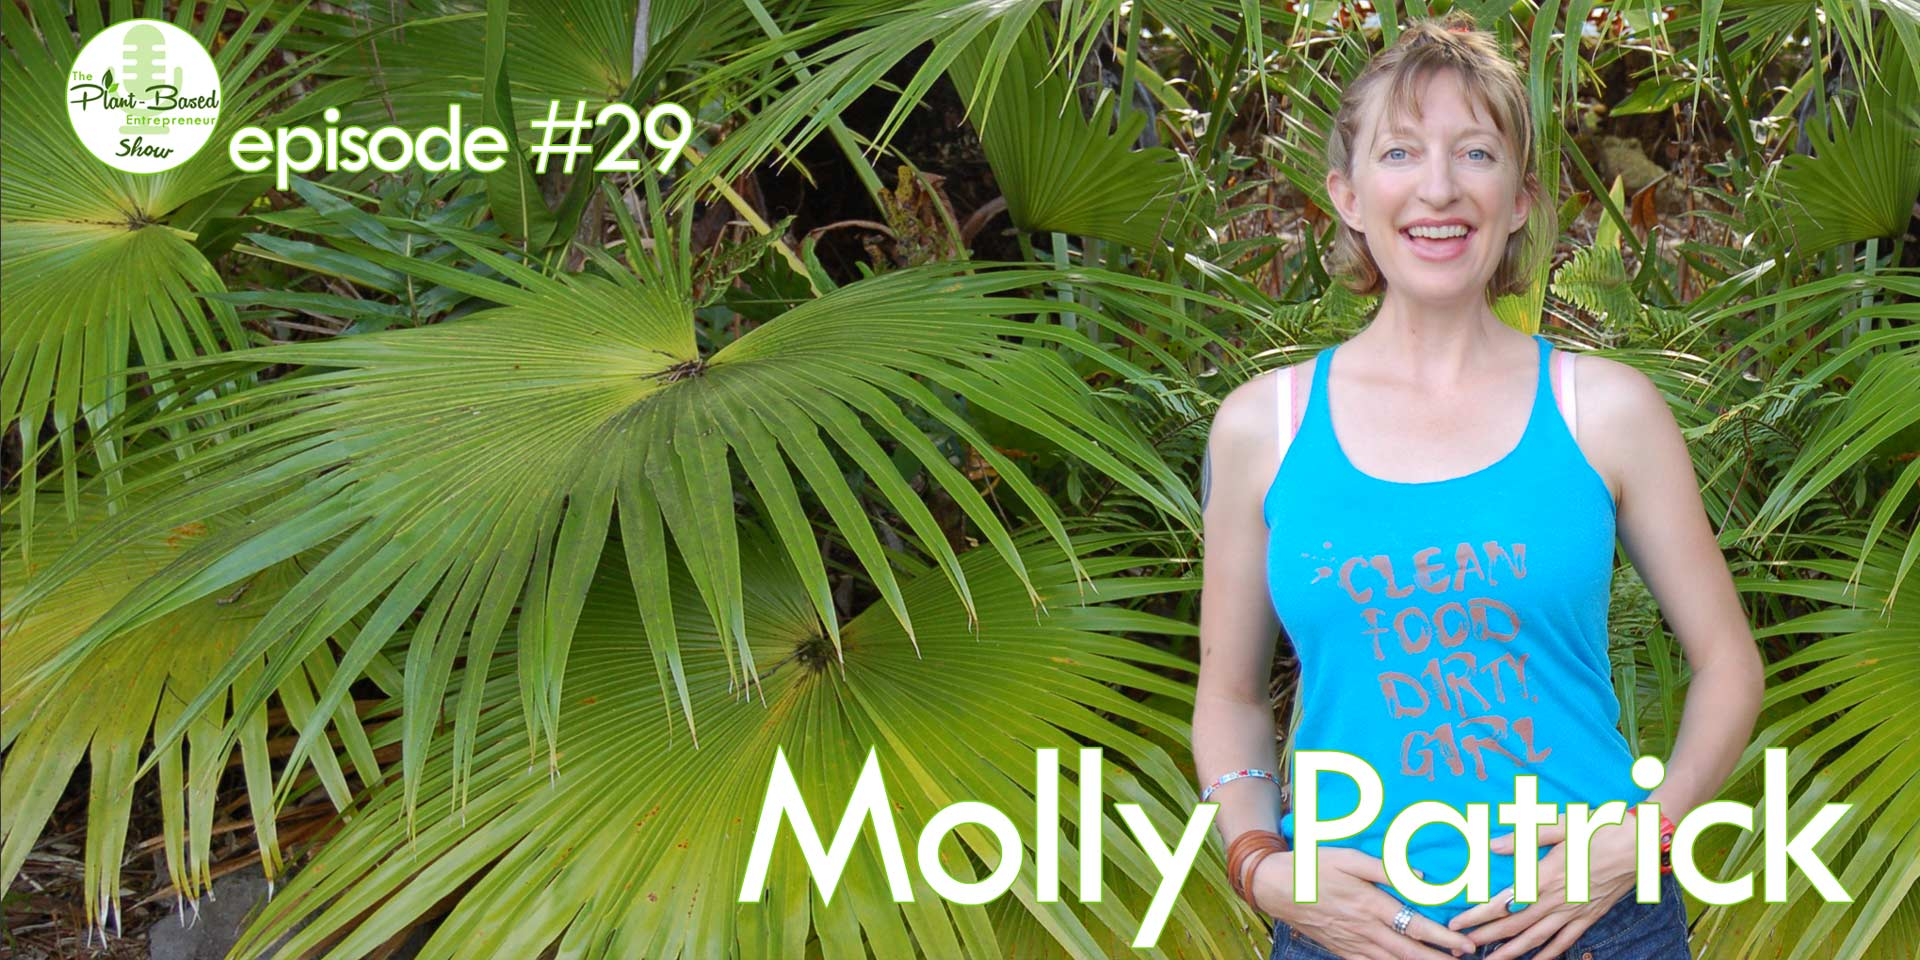 Episode #29 - Molly Patrick